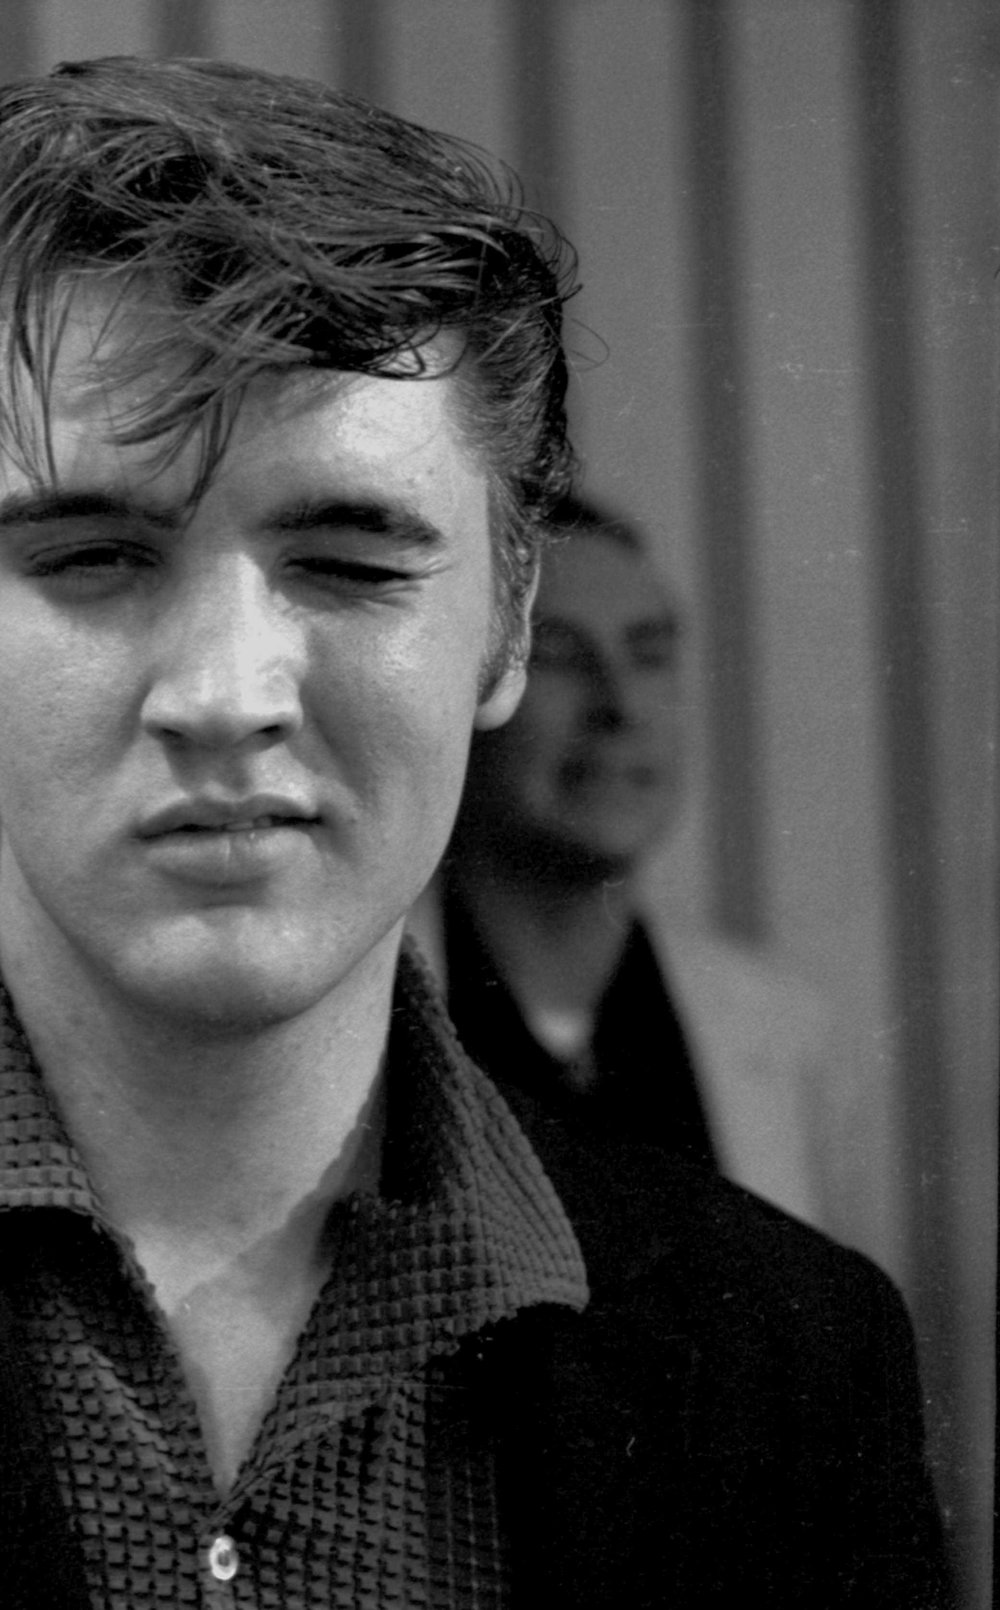 Elvis Close Up Winking.jpg